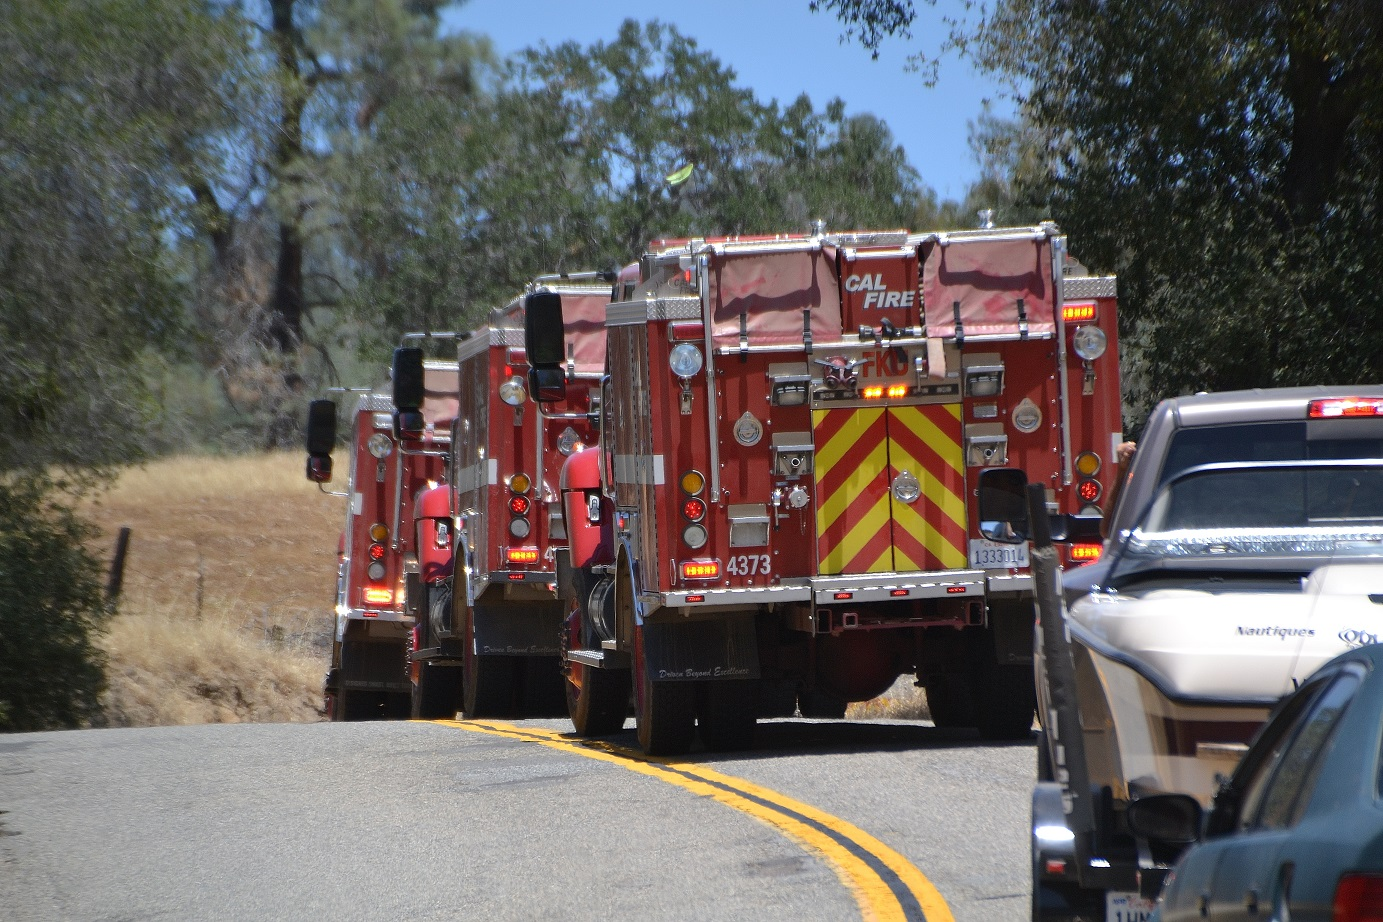 Strike Team Arrives at Red Fire - photo by Gina Clugston